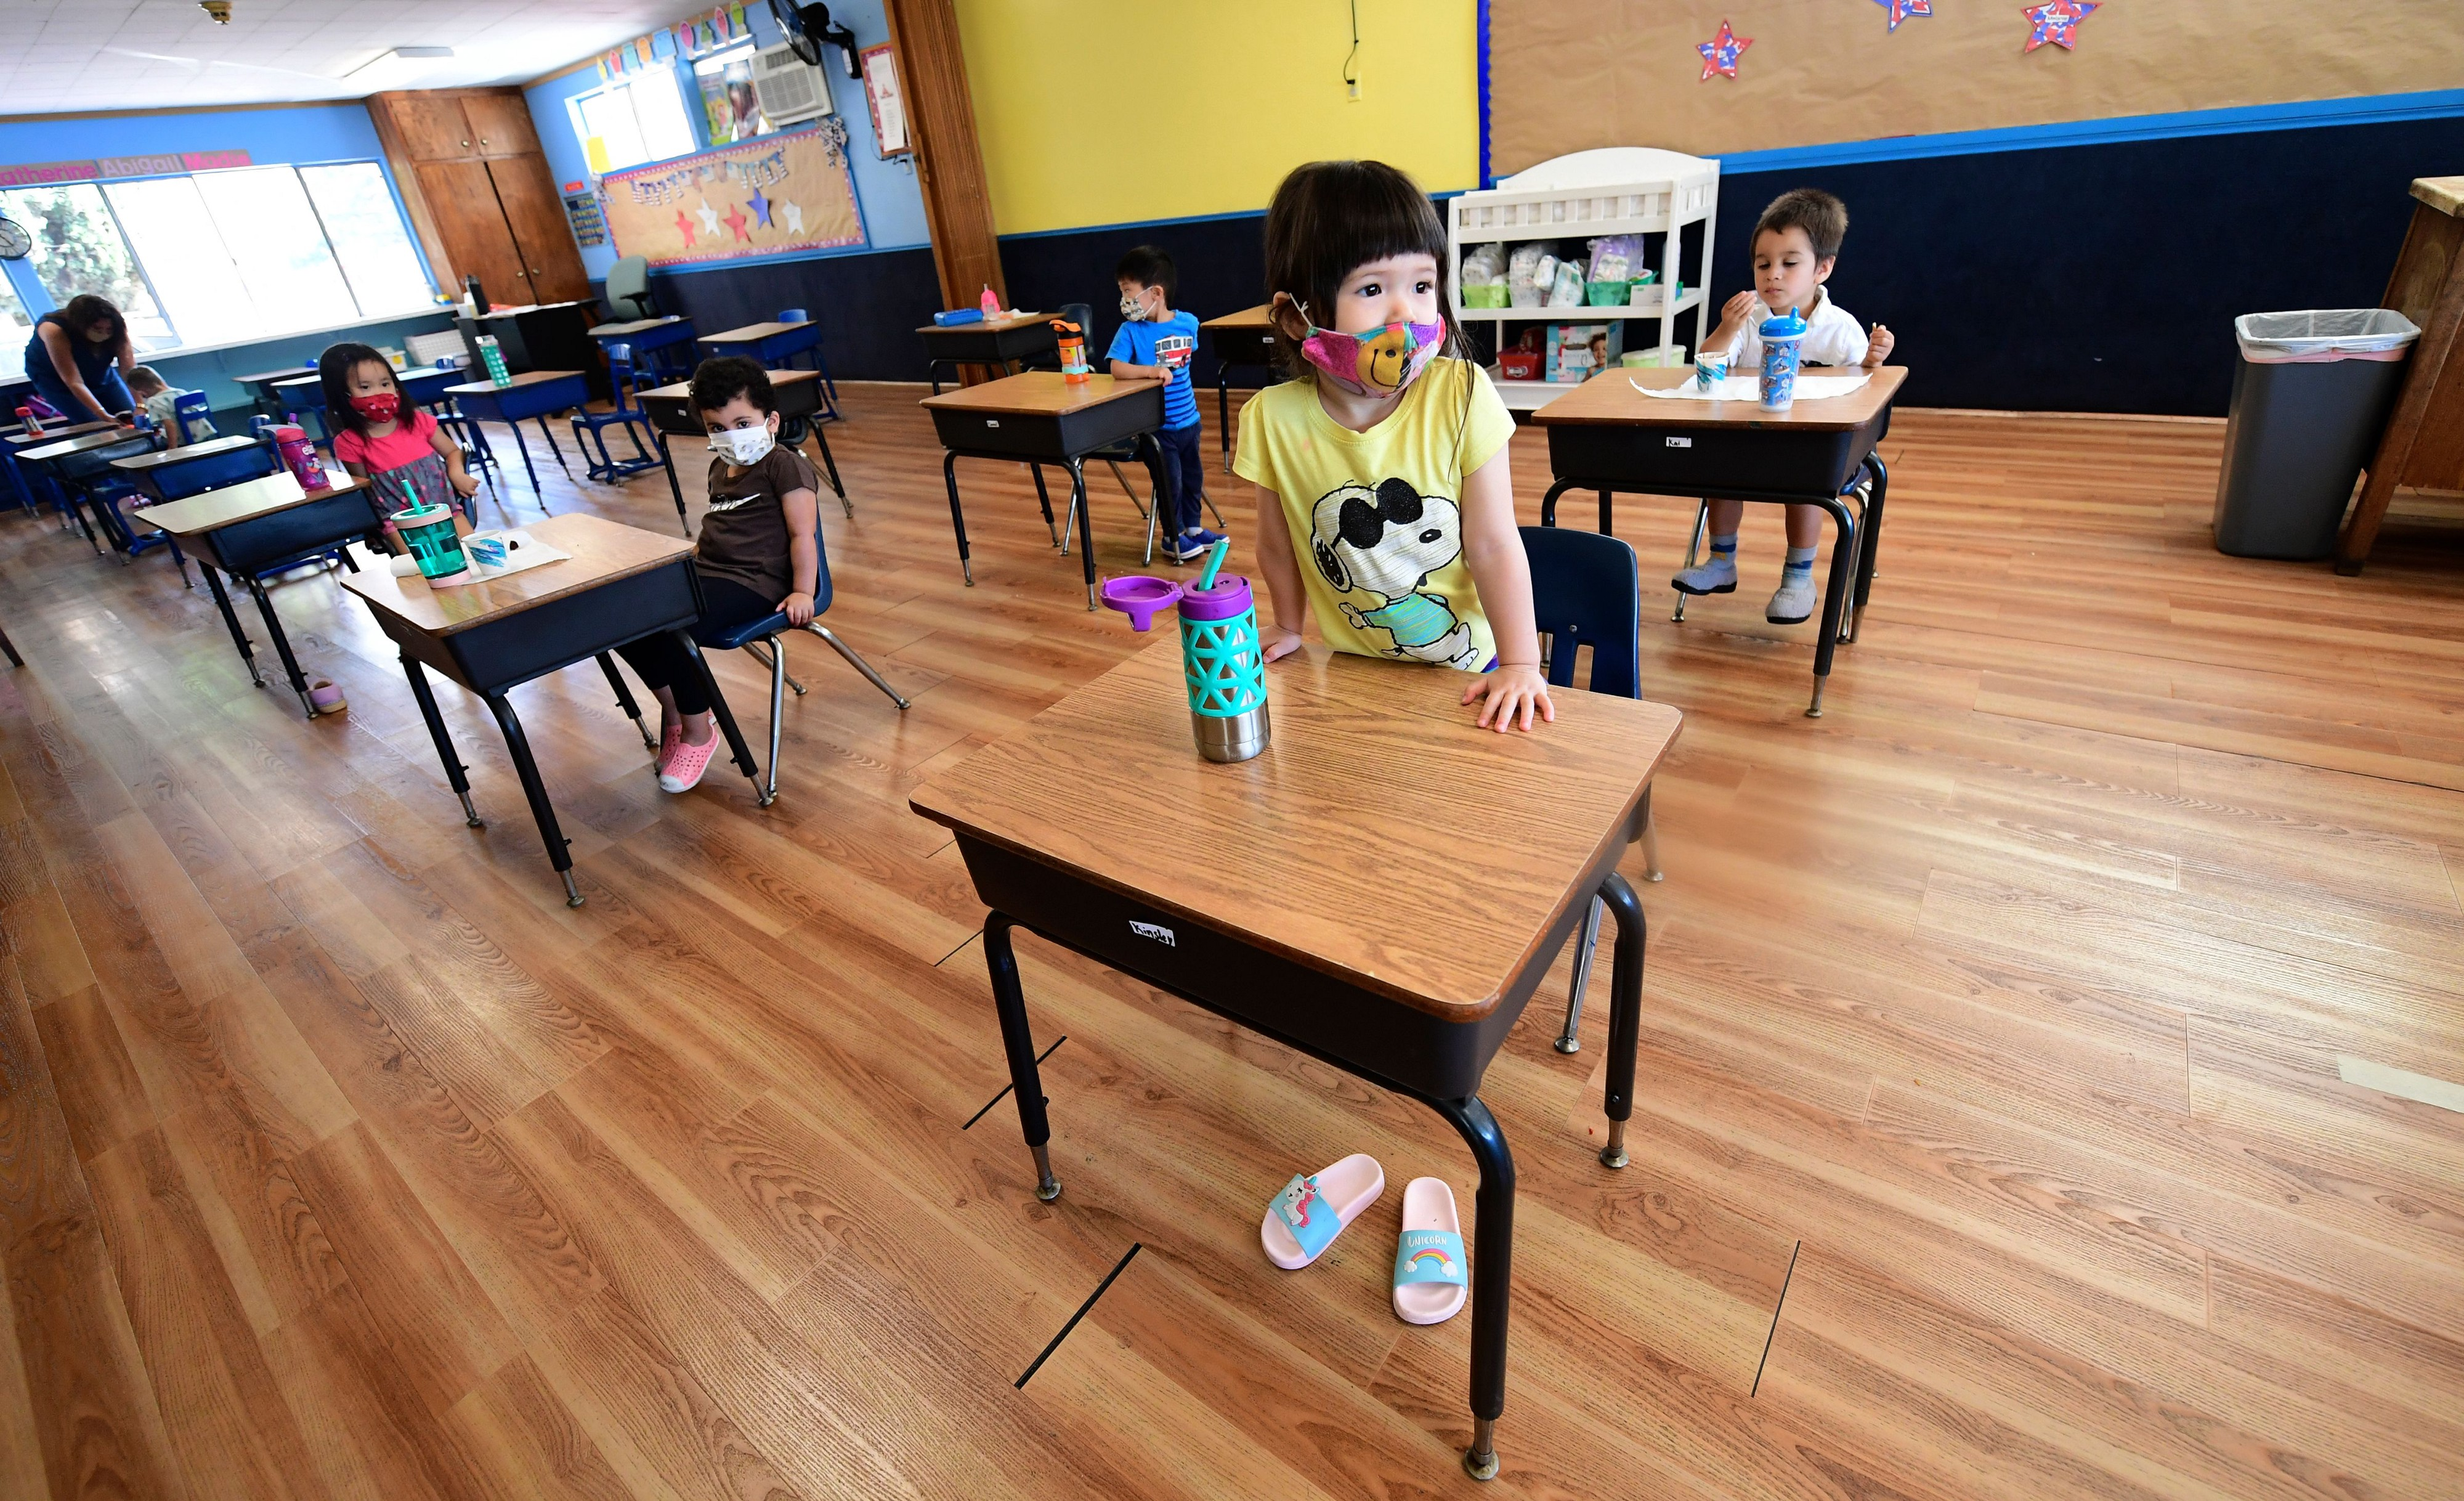 Children in a pre-school class wear masks and sit at desks spaced apart as per coronavirus guidelines during summer school.